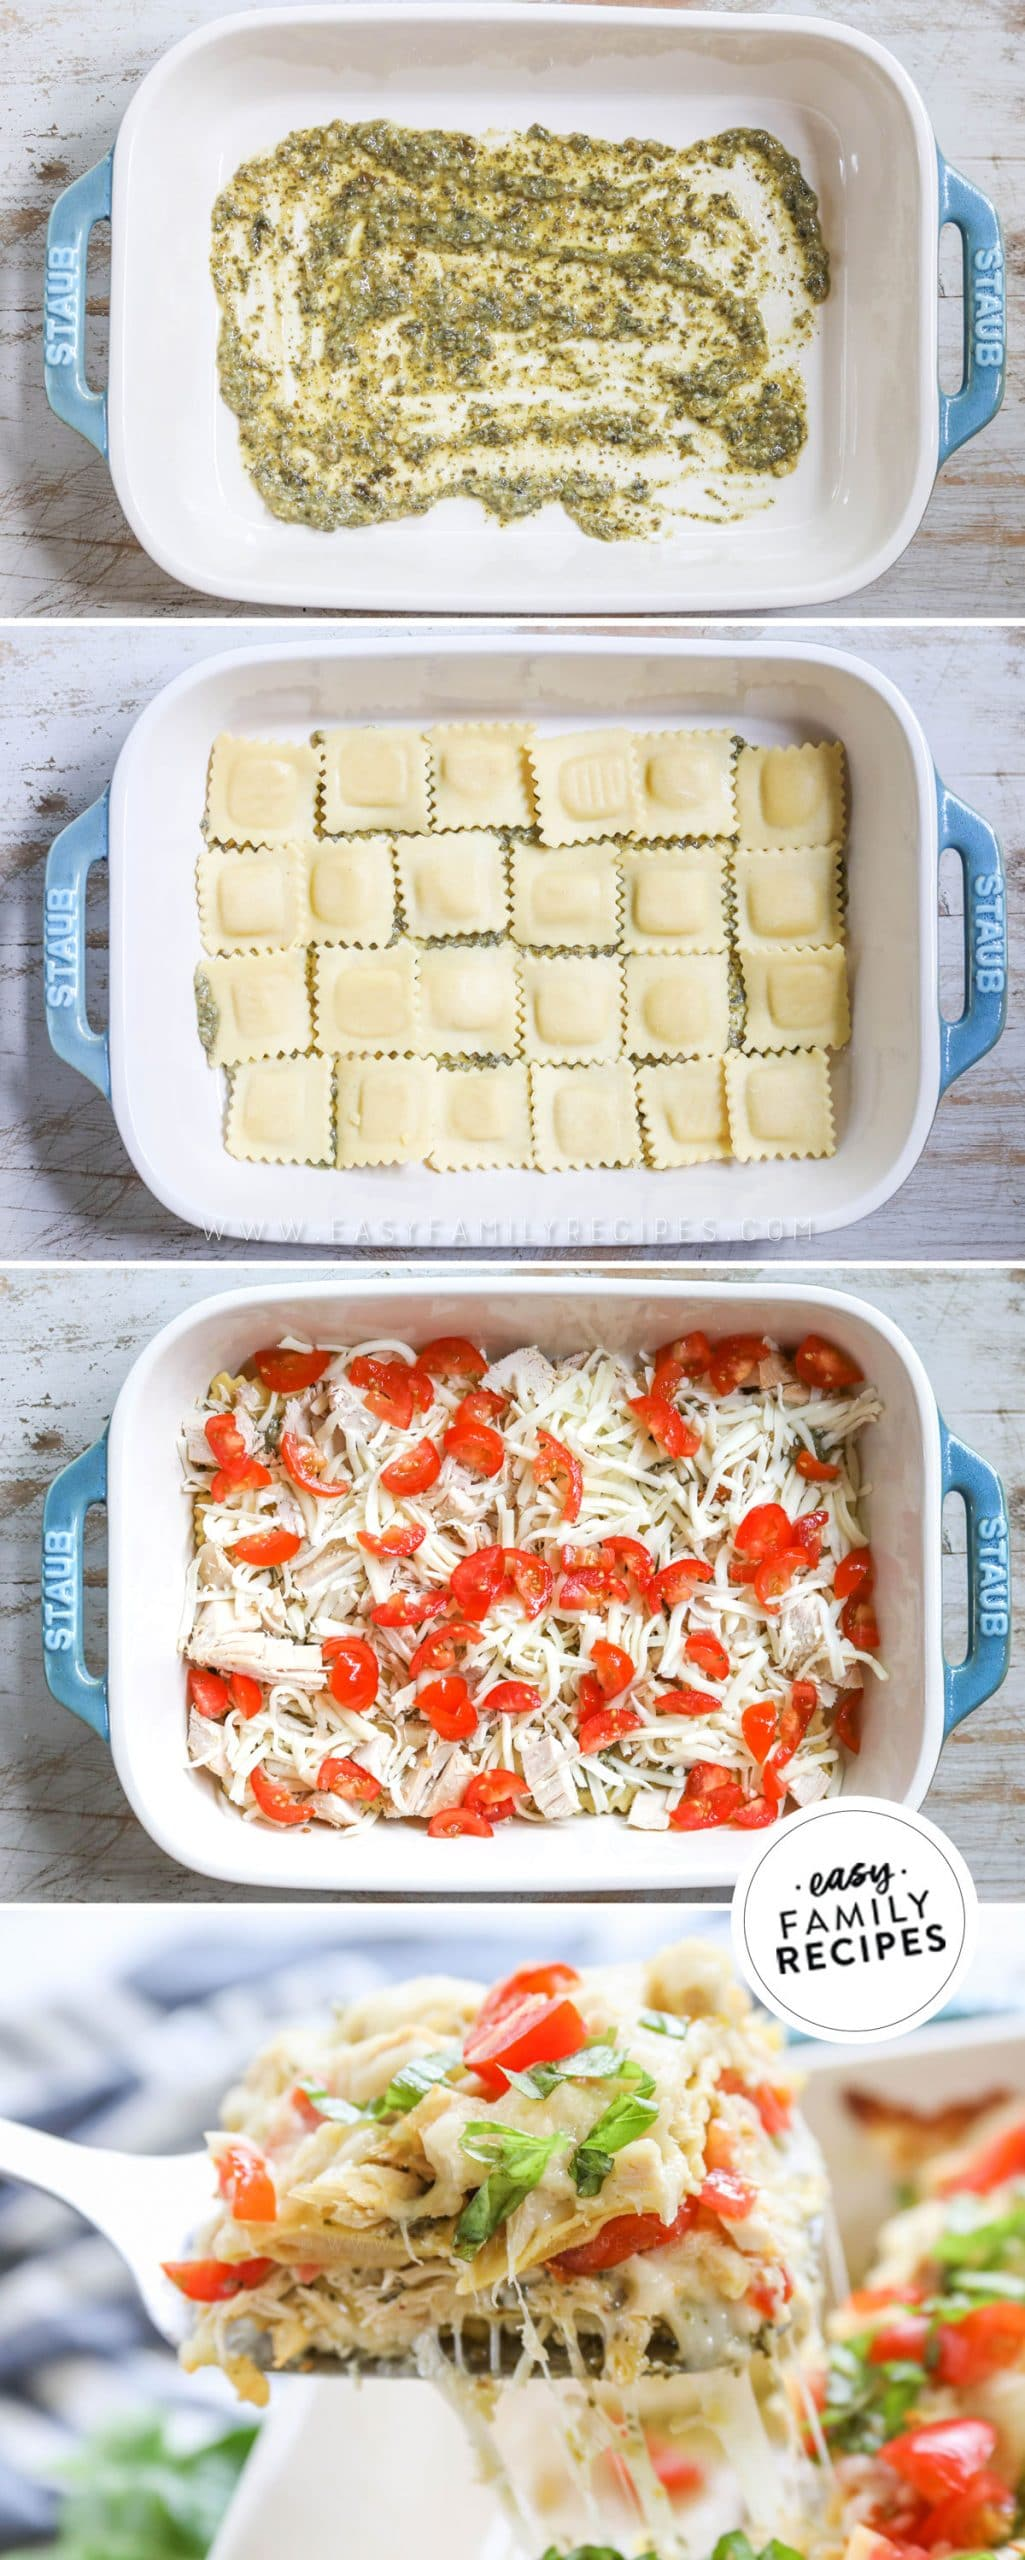 How to make Chicken Ravioli Bake - 1. Spread pesto on the bottom of a baking dish. 2. Layer refrigerated ravioli in the dish. 3. Cover with chicken, pesto, cheese, and tomatoes. repeat. 4. Bake until the casserole is hot throughout